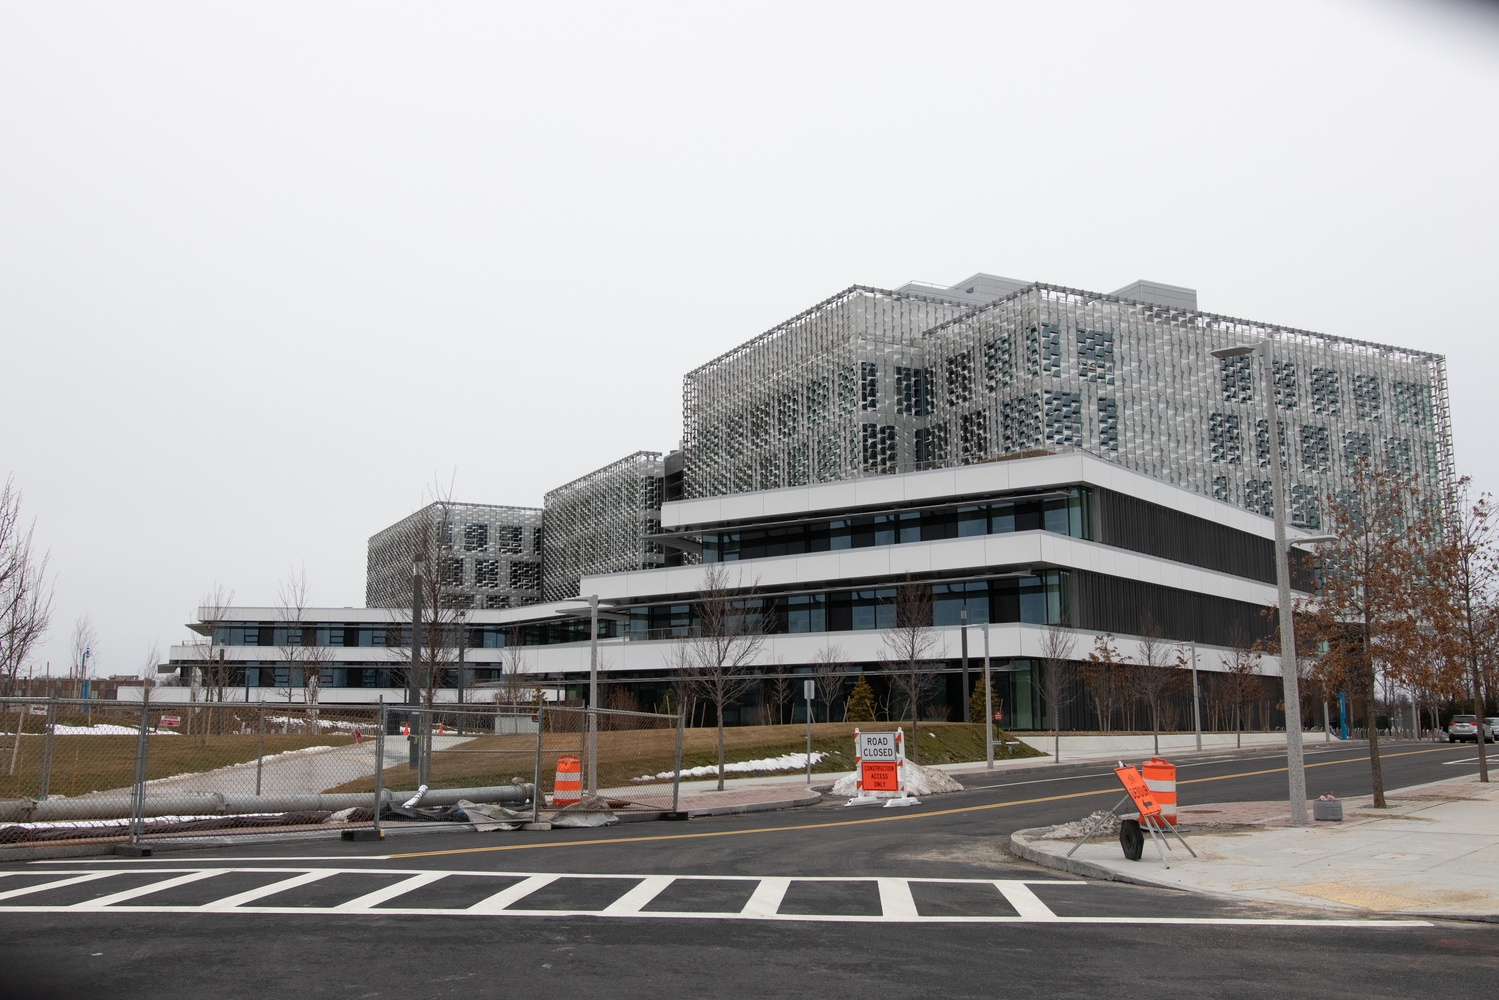 Harvard's Science and Engineering Complex is located at 150 Western Avenue in Allston. Further Harvard development in Allston is set to include the Enterprise Research Campus.